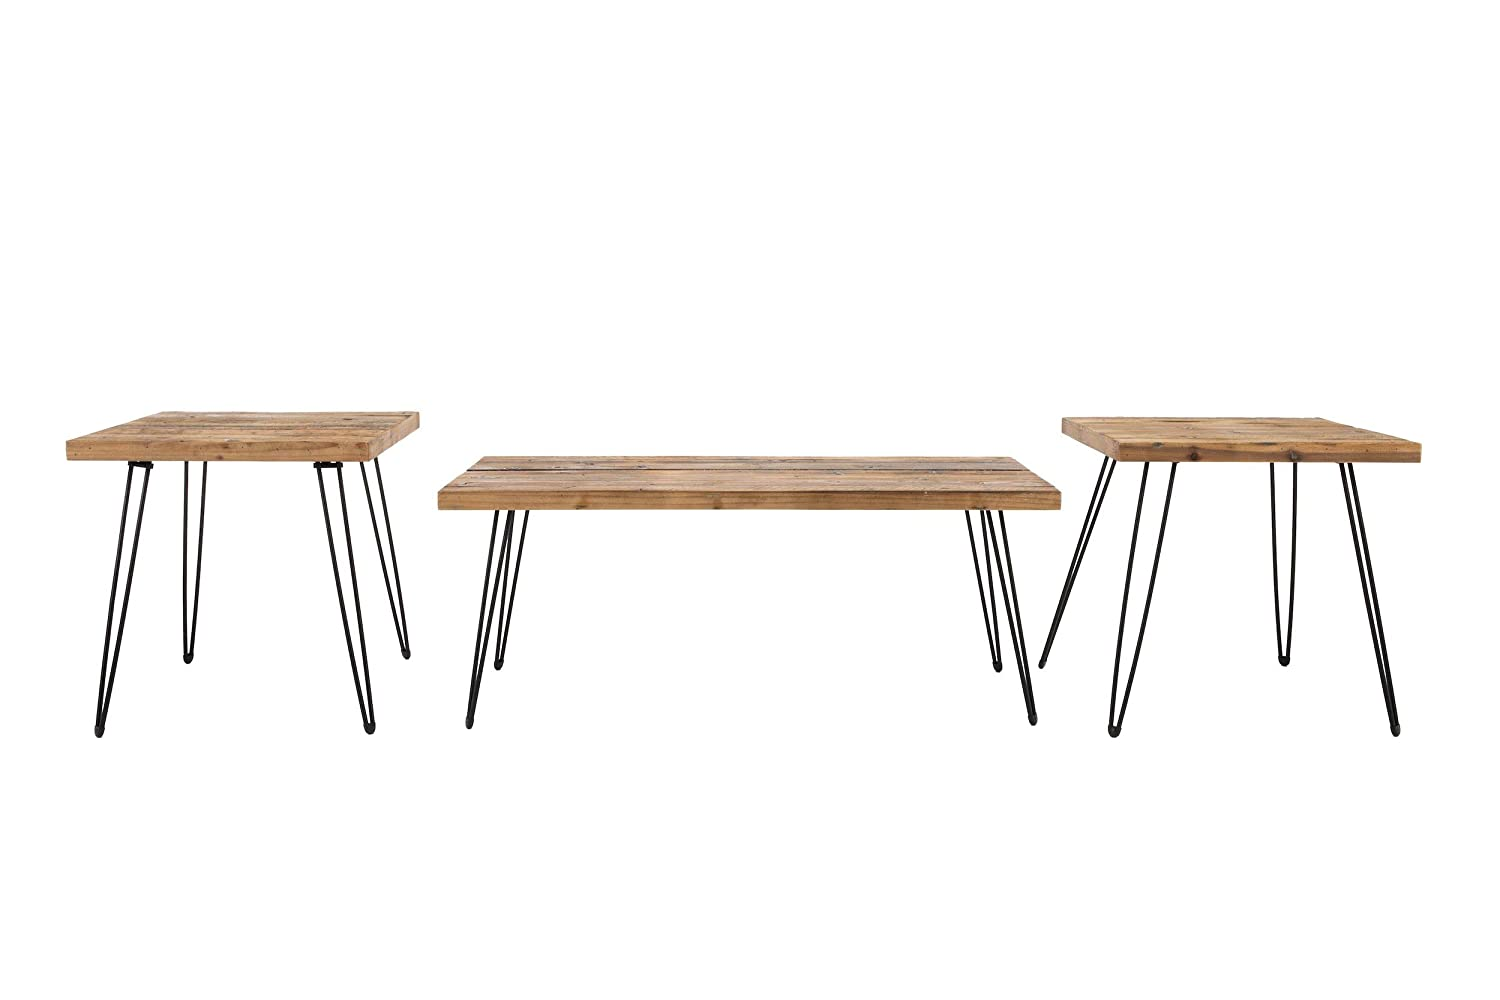 Belmont Home Reclaimed Wood and Metal Tables (Set of 3) Crawford and Burke AZ10254T3A